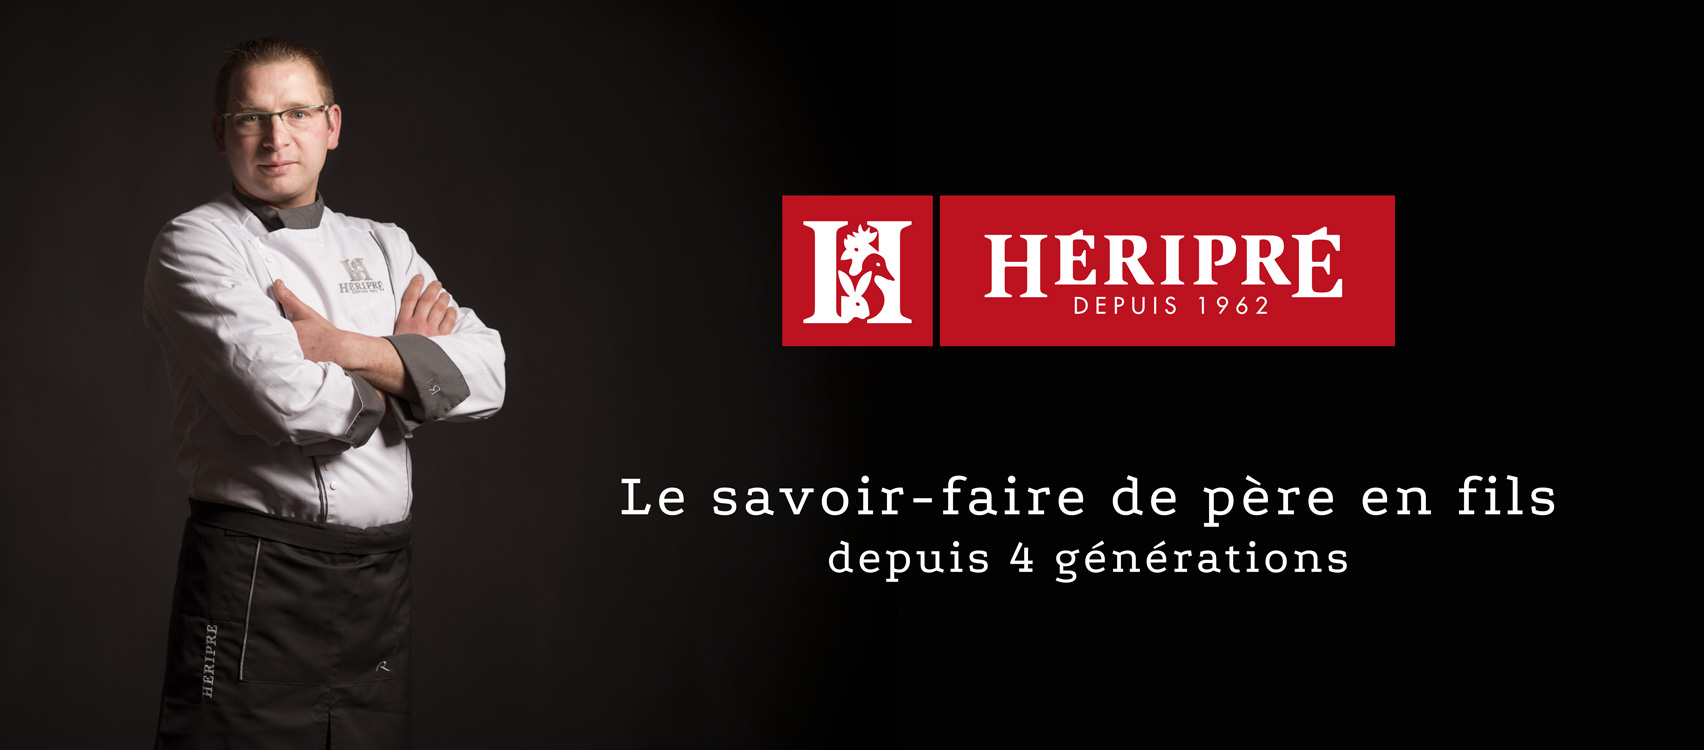 heripre-charcutier-volaille-epicerie-fine-amiens-somme-picardie-specialite